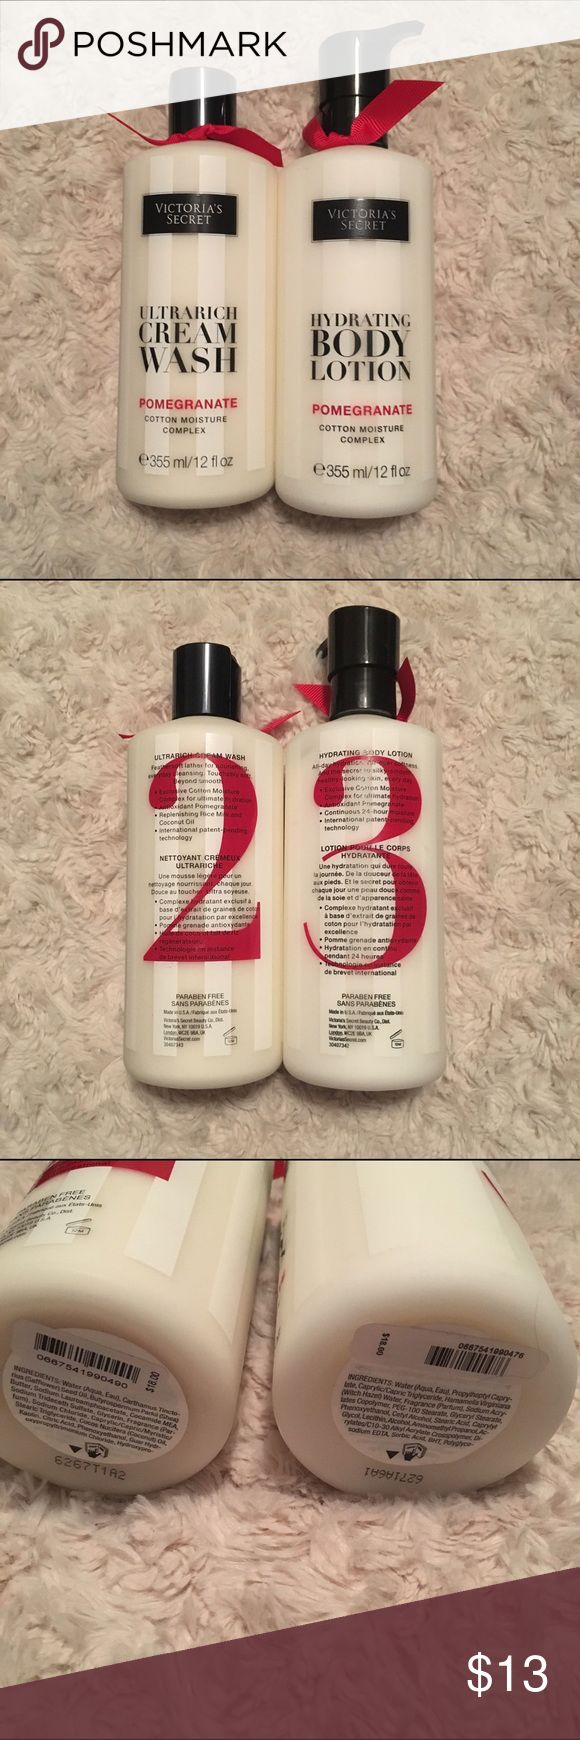 Victoria's Secret body care collection Victoria's Secret body care collection in pomegranate. Brand new, never used. It is the cream body wash and moisturizing body lotion. Each is priced at 18$ normally. Victoria's Secret Makeup